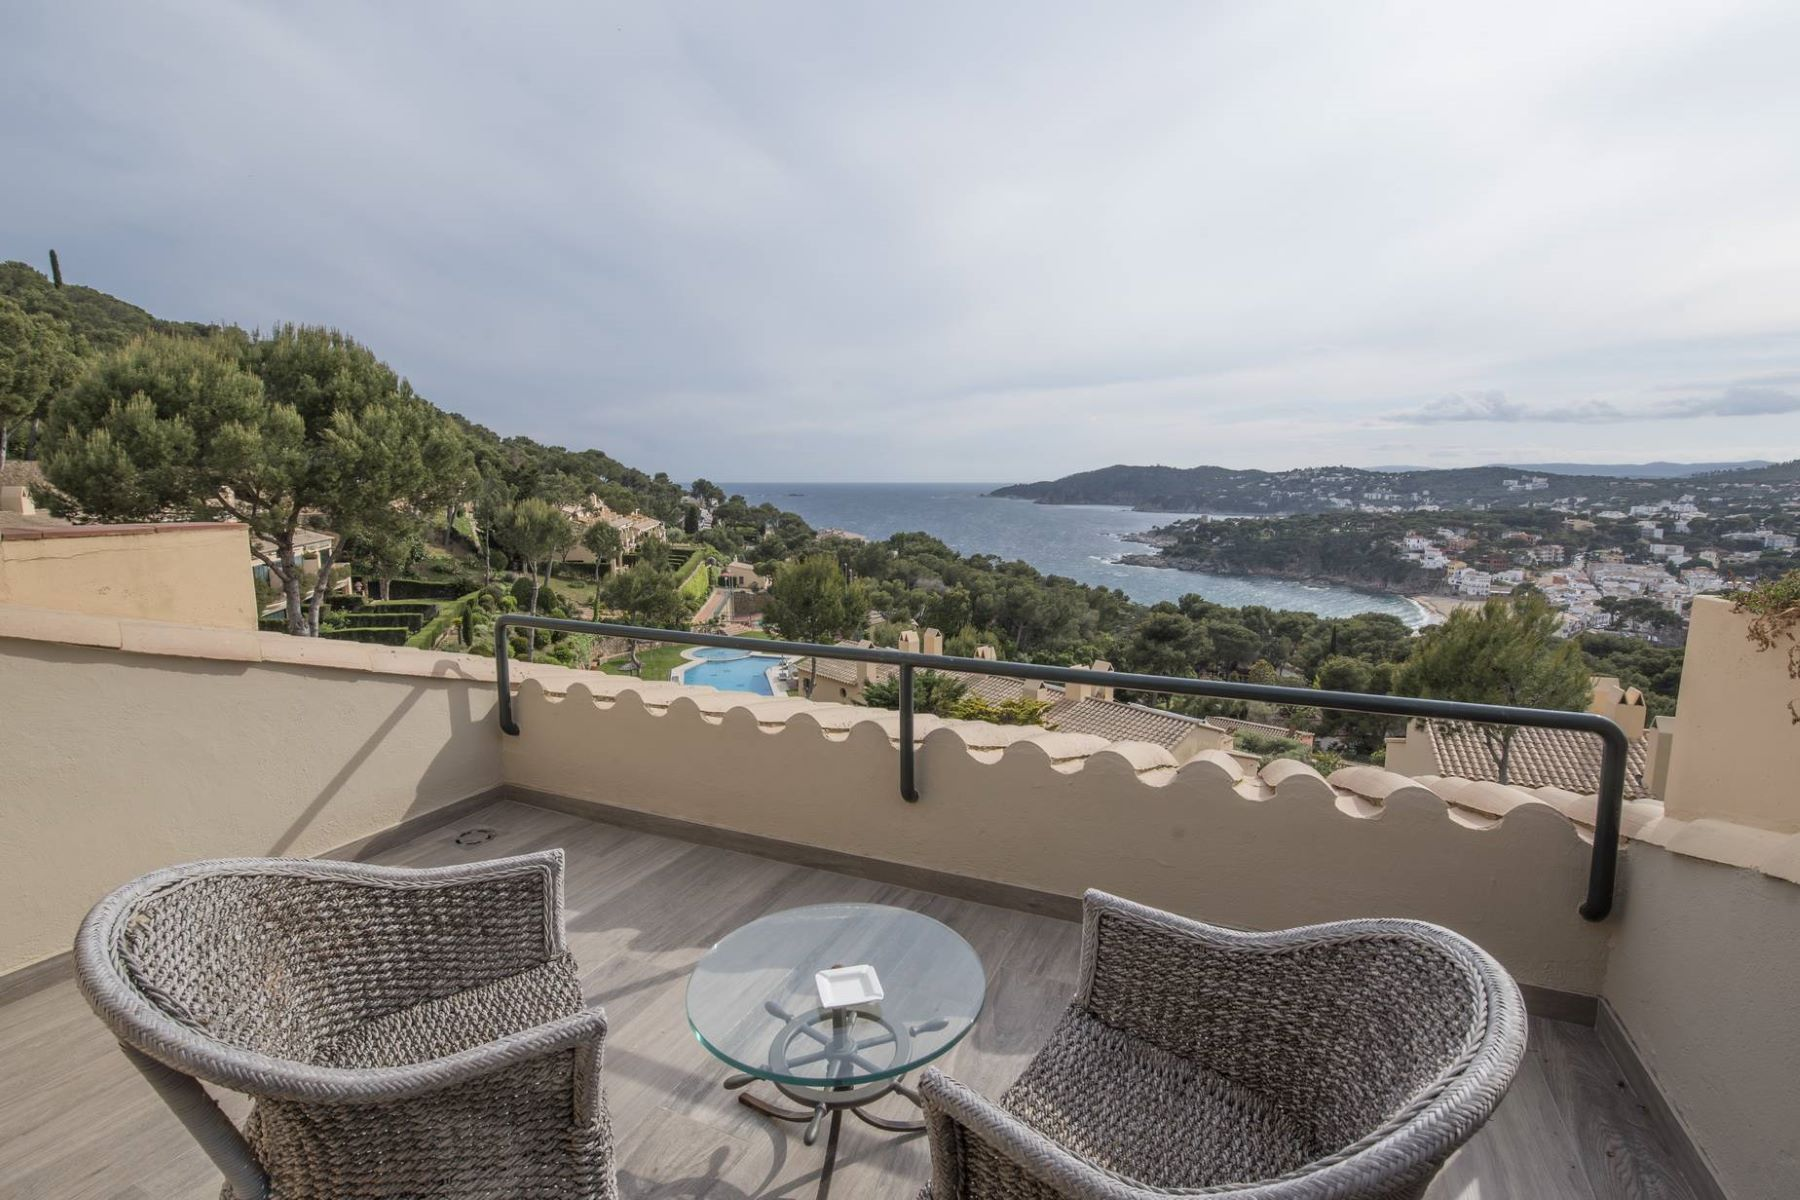 واحد منزل الأسرة للـ Sale في Elegant house semi detached, with pool and beautiful views in llafranc Llafranc, Costa Brava, 17211 Spain